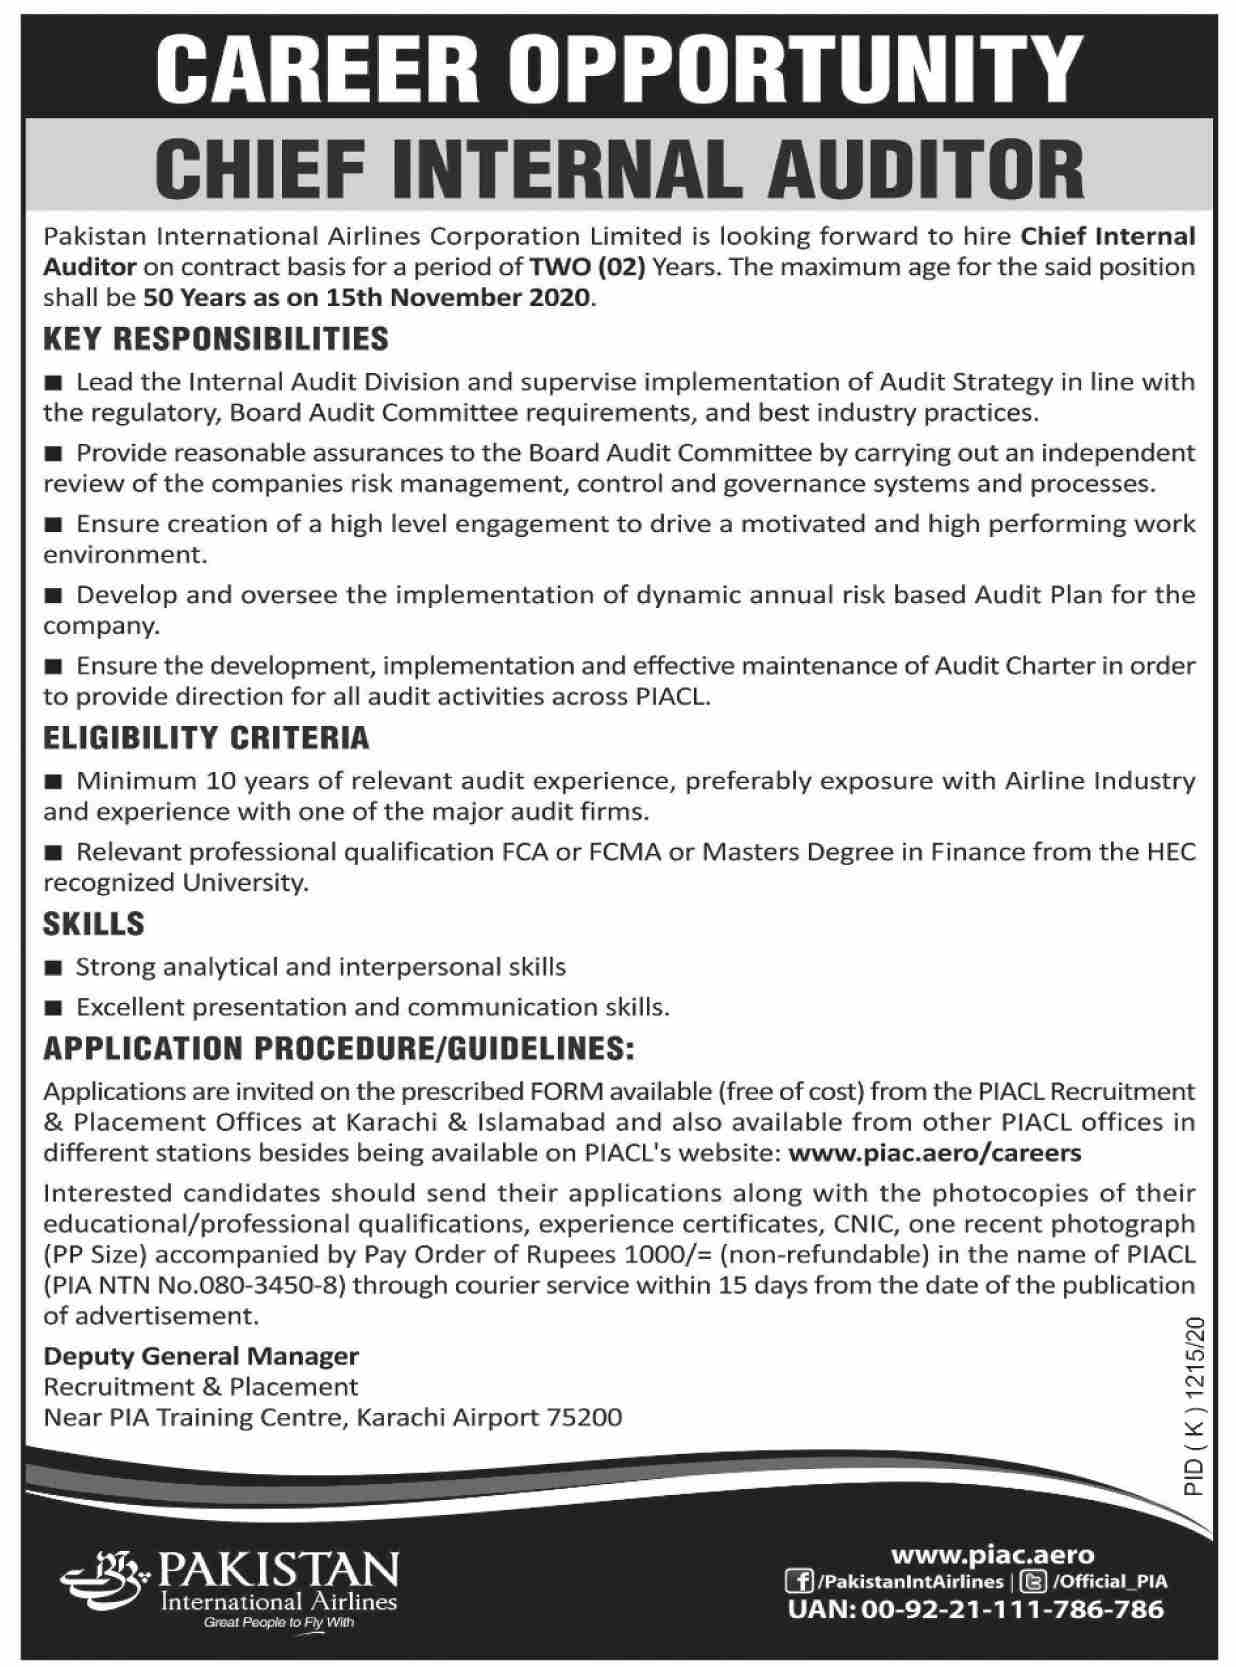 PIA Jobs 2021 - PIA Latest Jobs 2021 - PIA New Jobs 2021 - Pakistan International Airline Jobs 2021 - How to Apply for Pakistan International Airline PIA Jobs 2021